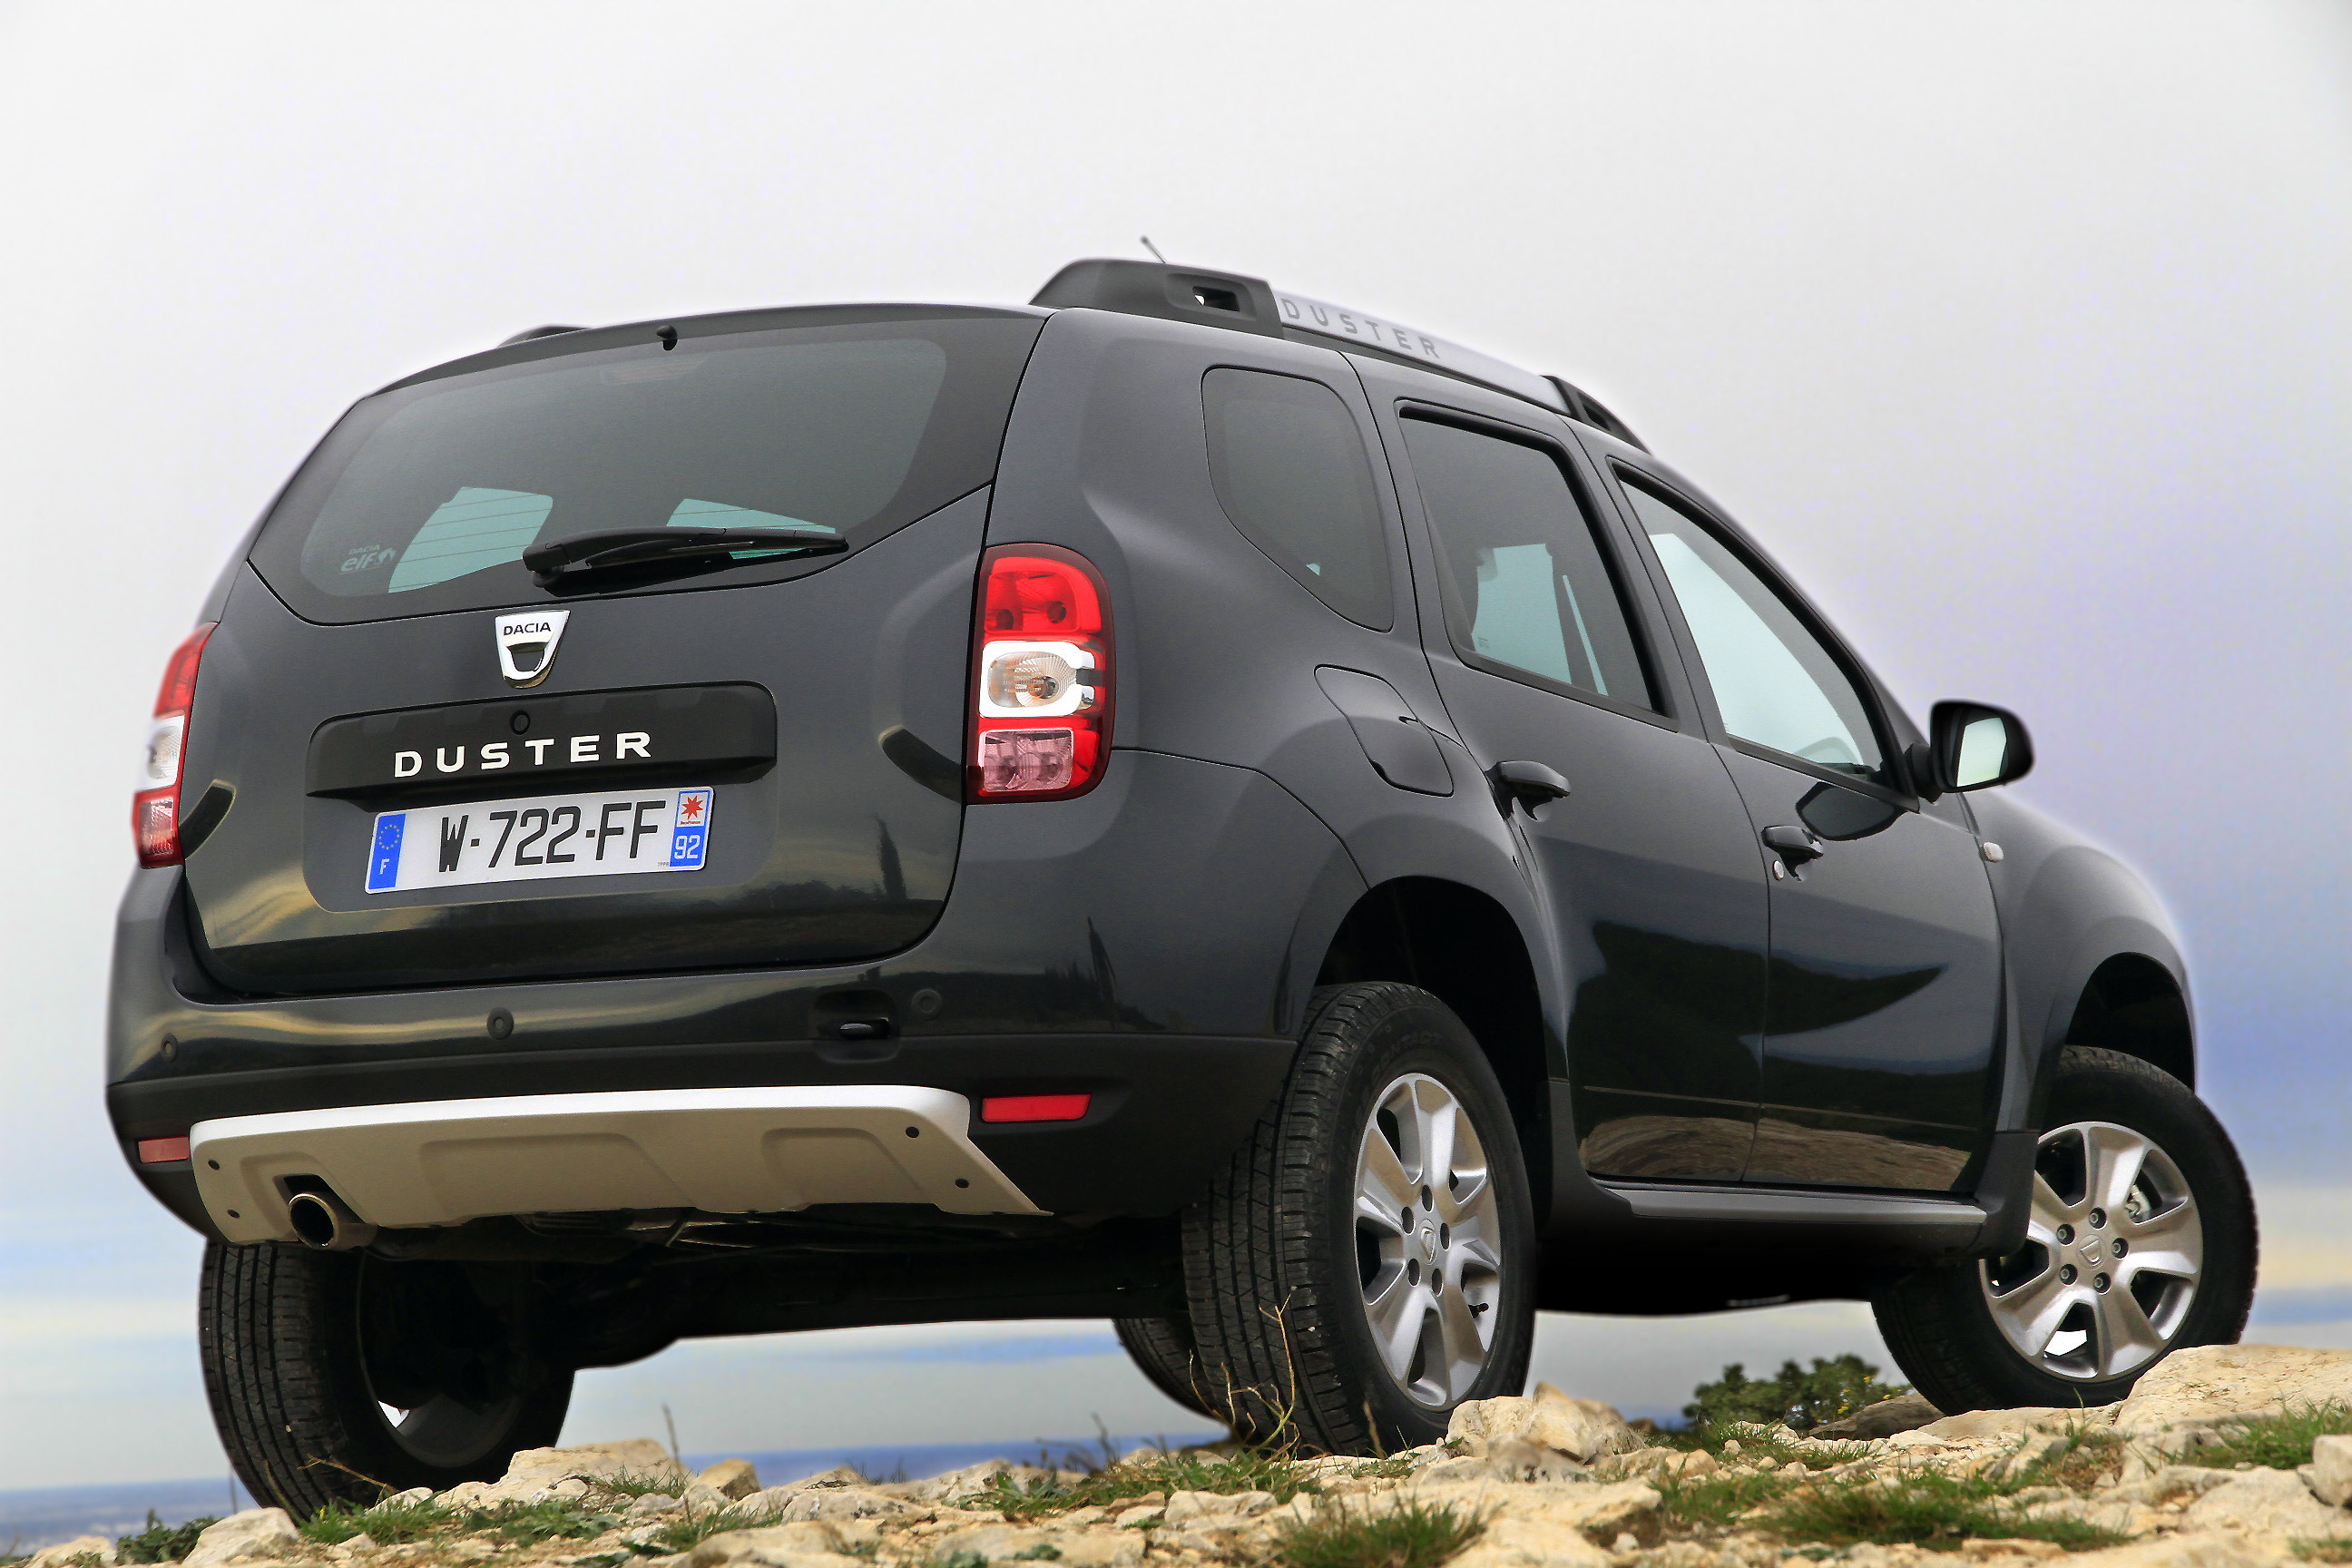 essai dacia duster duster 2013 autos post essai nouveau dacia duster autos weblog essai dacia. Black Bedroom Furniture Sets. Home Design Ideas